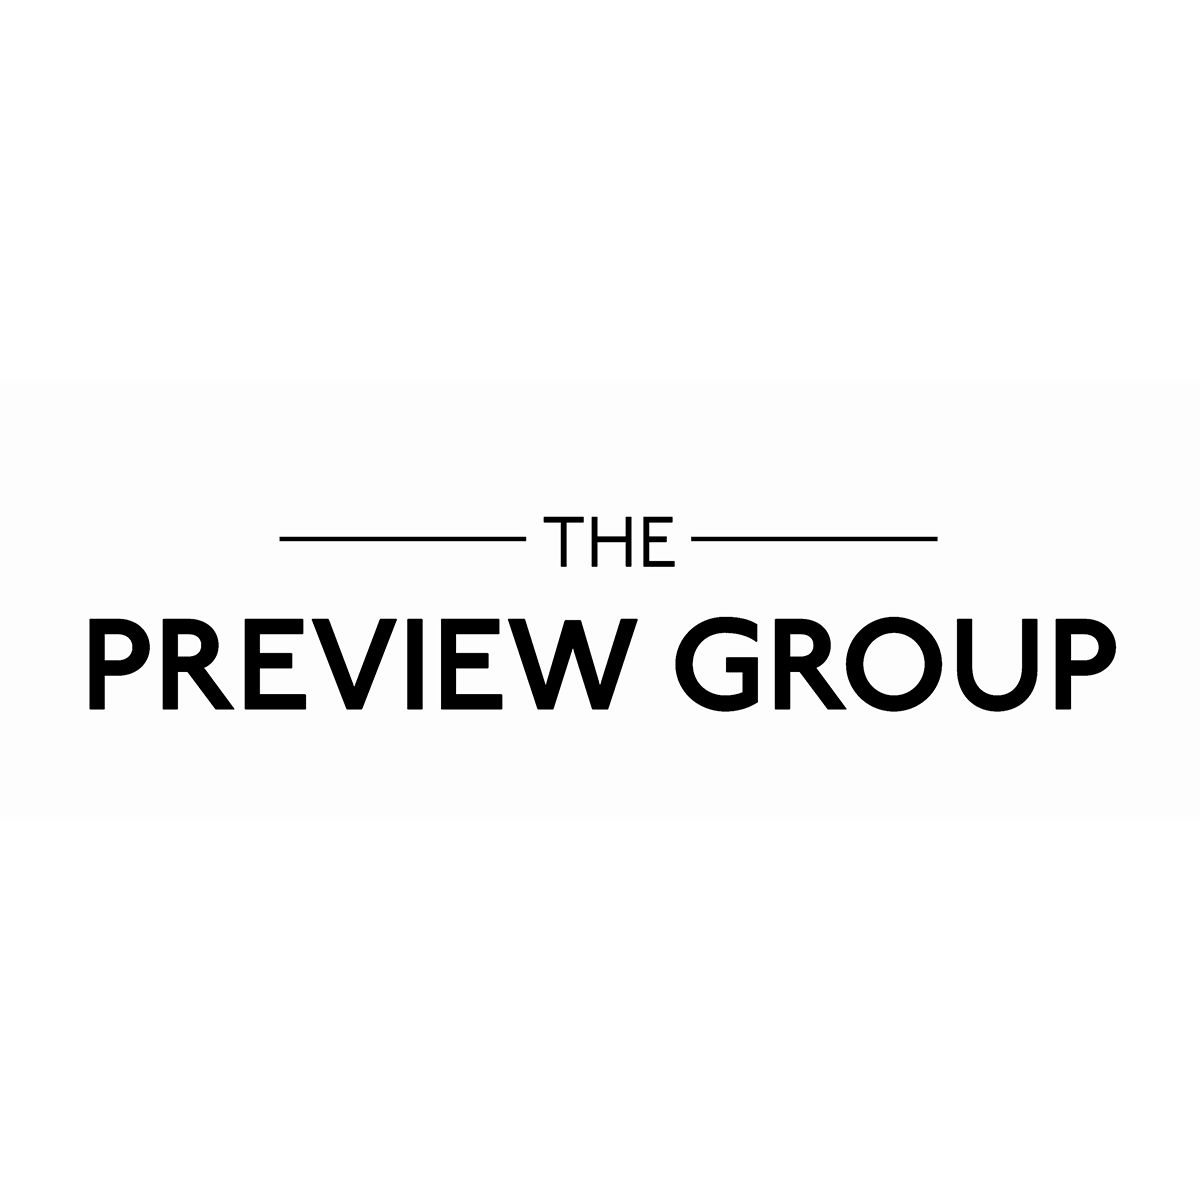 Preview Group logo